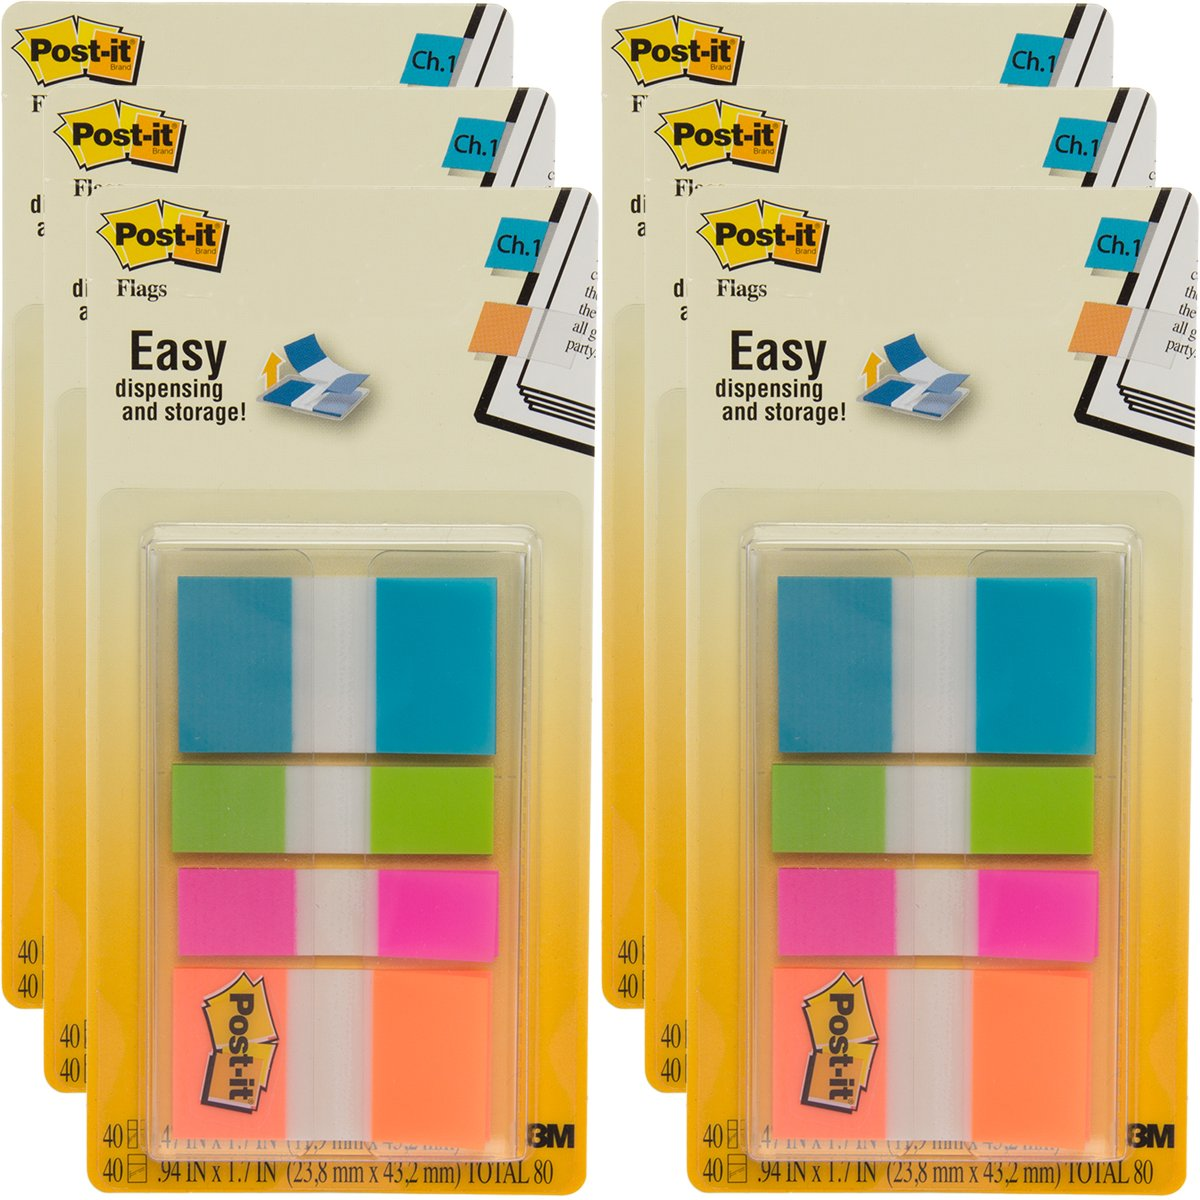 Post-It (480 Count) Flags in 2 Sizes, Bright Colors: Blue Green Pink and Orange, Value Pack, Color Code